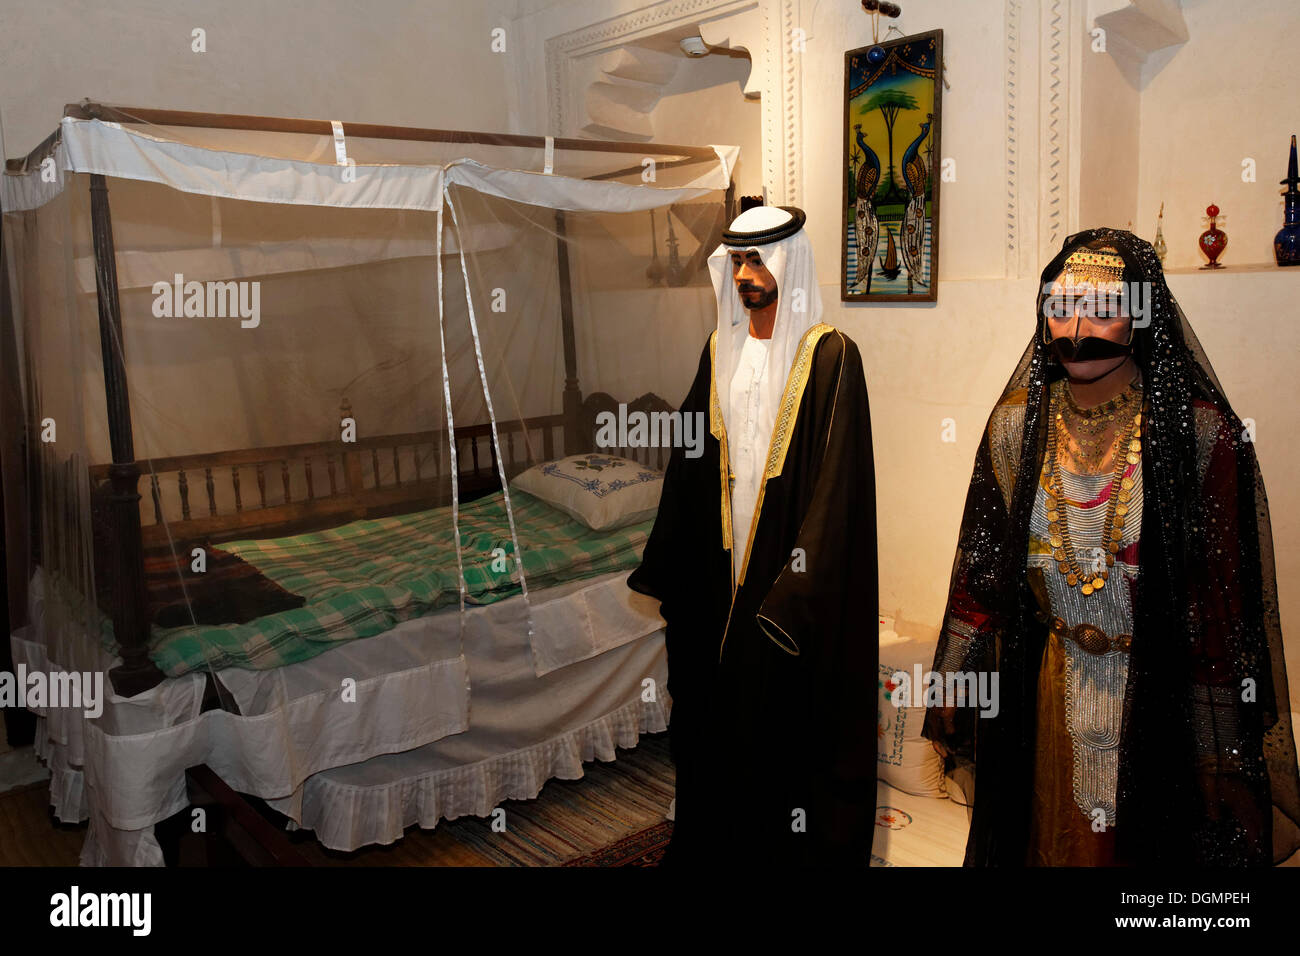 7ef7fcd7c5379 Arab couple wearing traditional clothing, life-size figures, Heritage House  Museum, United Arab Emirates, Middle East, Asia